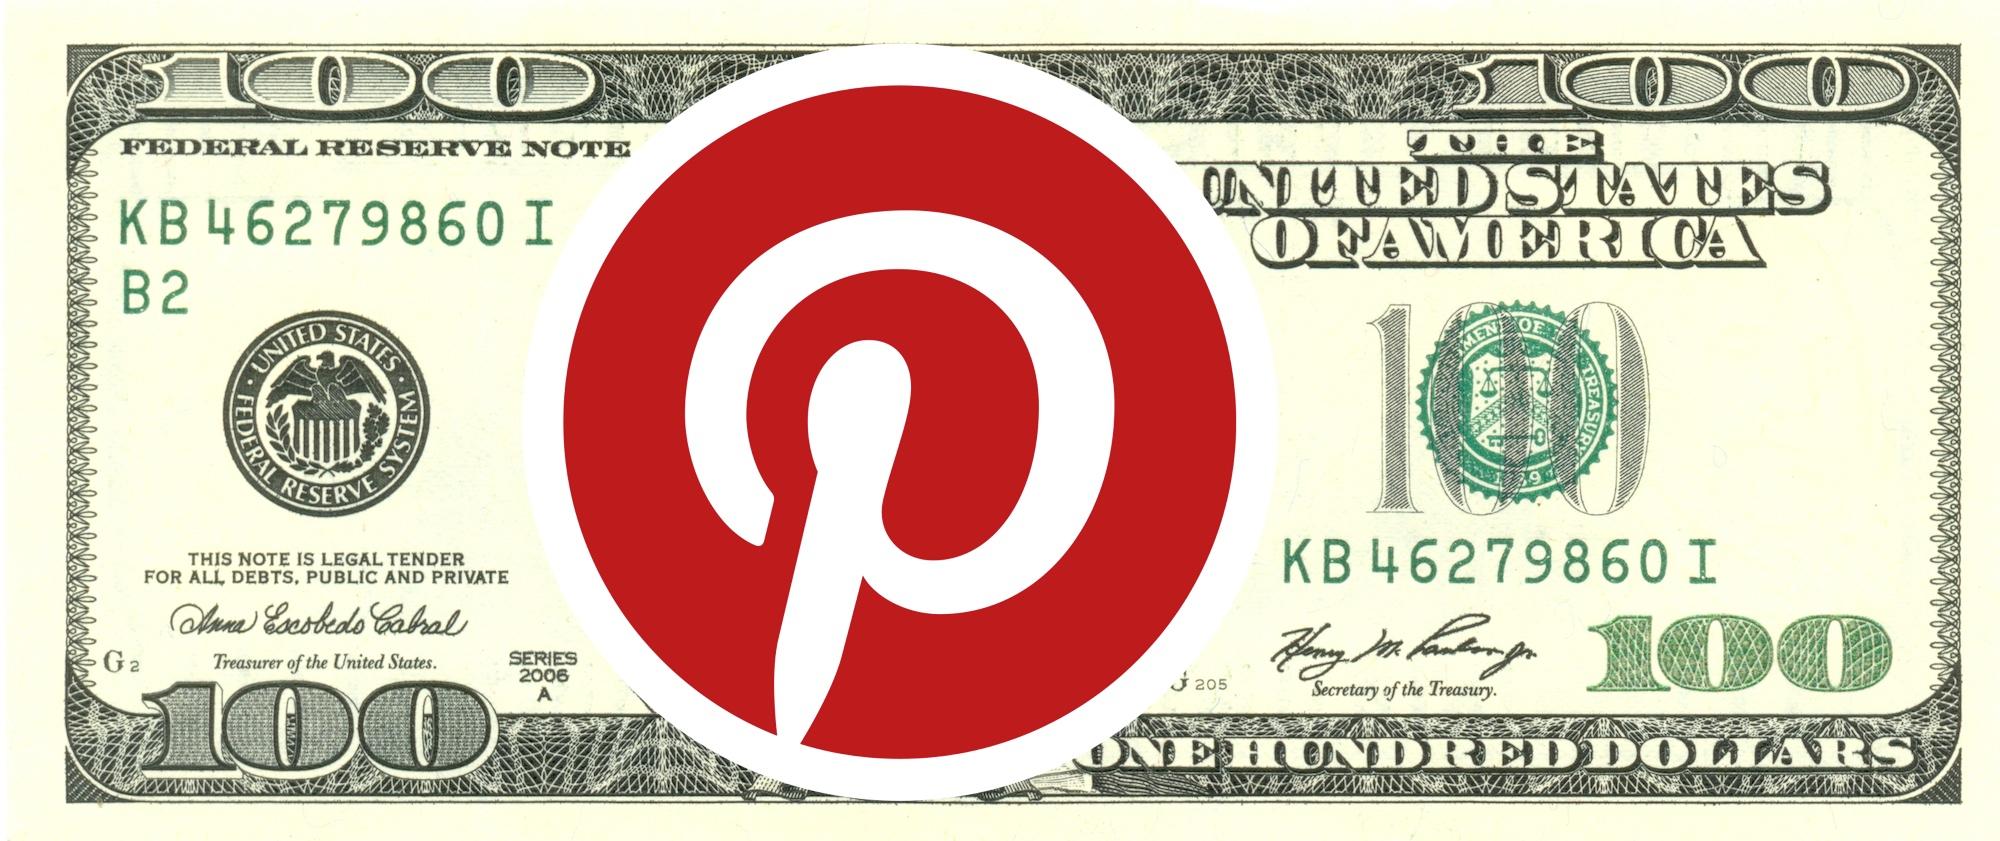 The Price Tag of the Pinterest is less than the last year one's